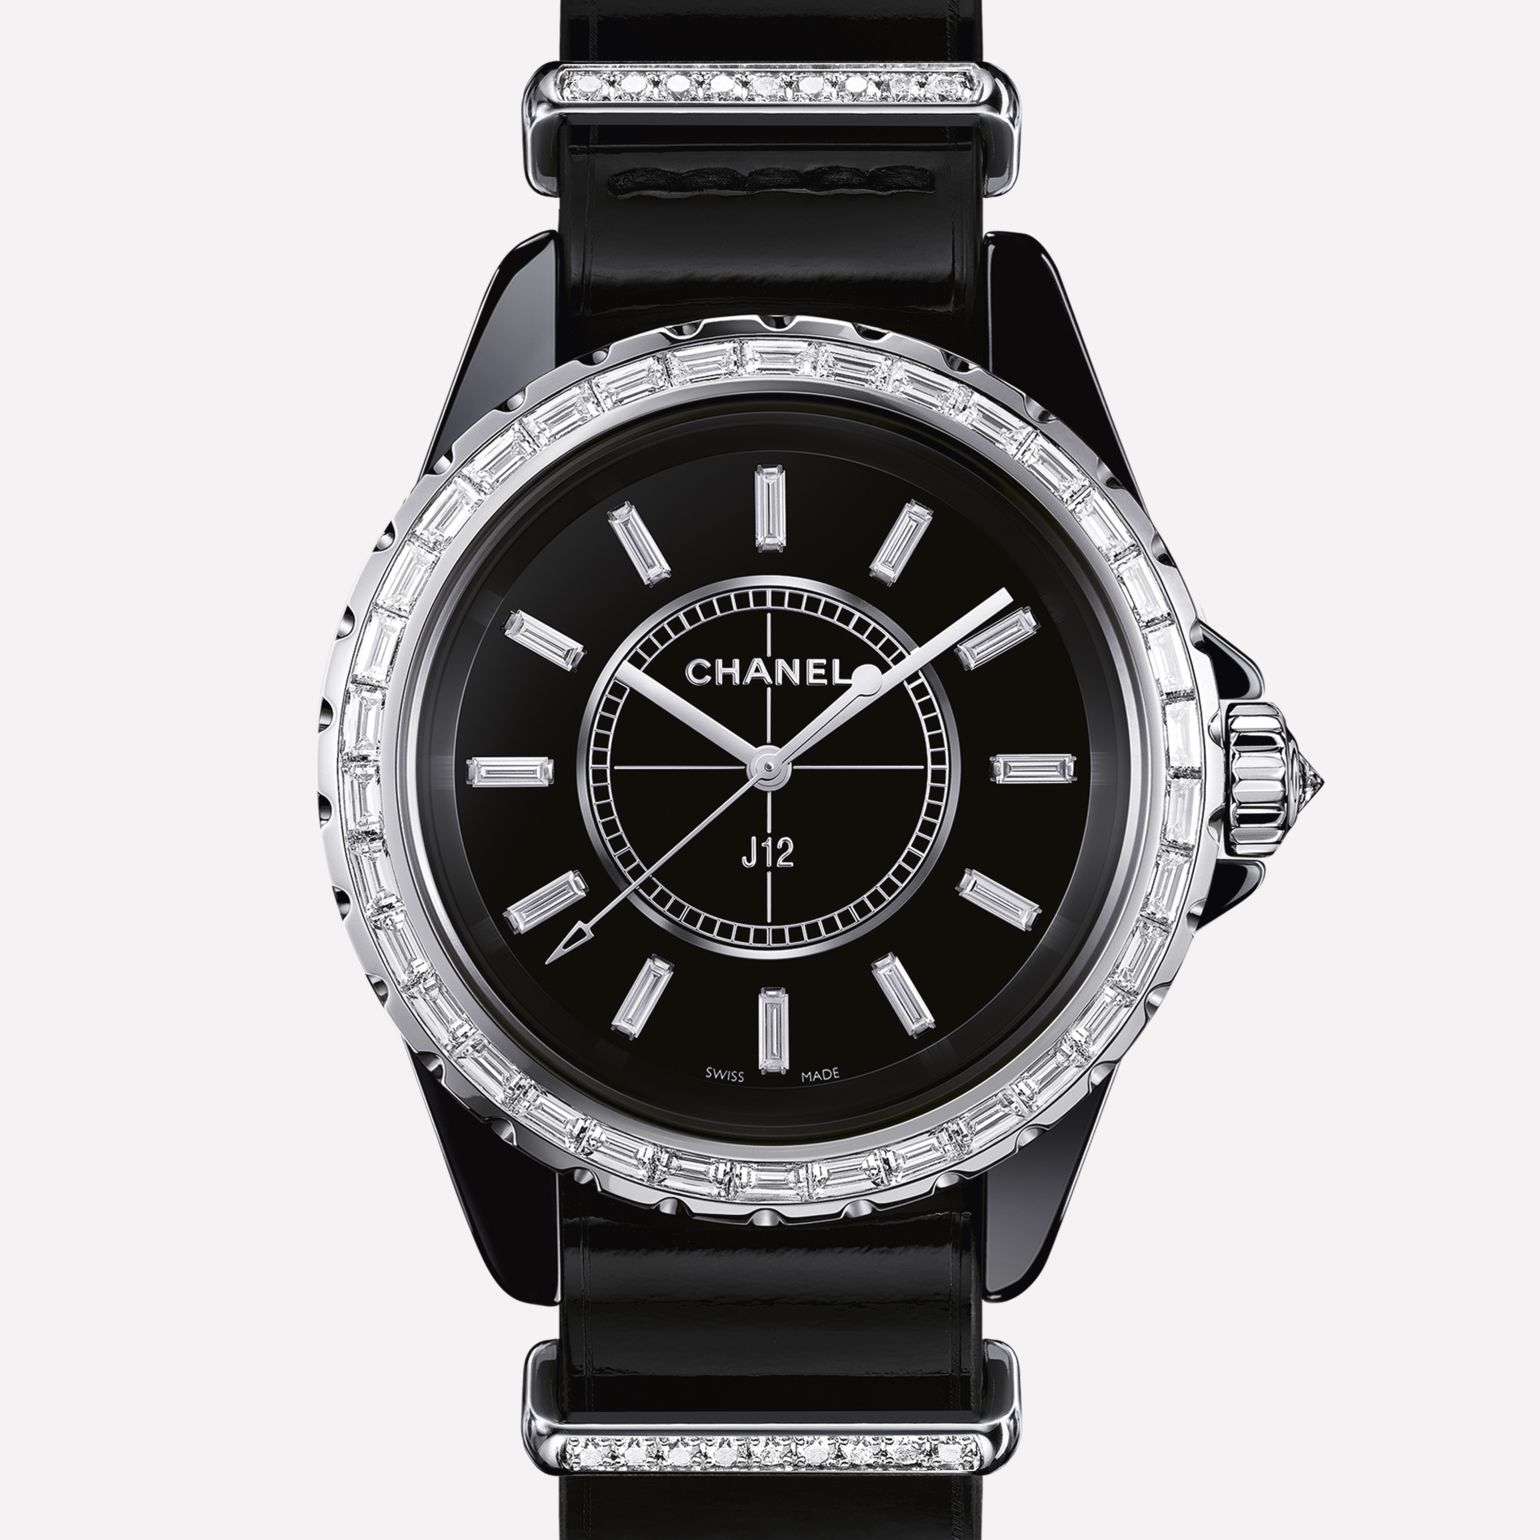 J12-G10 Jewelry Watch Black ceramic and white gold, baguette-cut diamond bezel and indicators